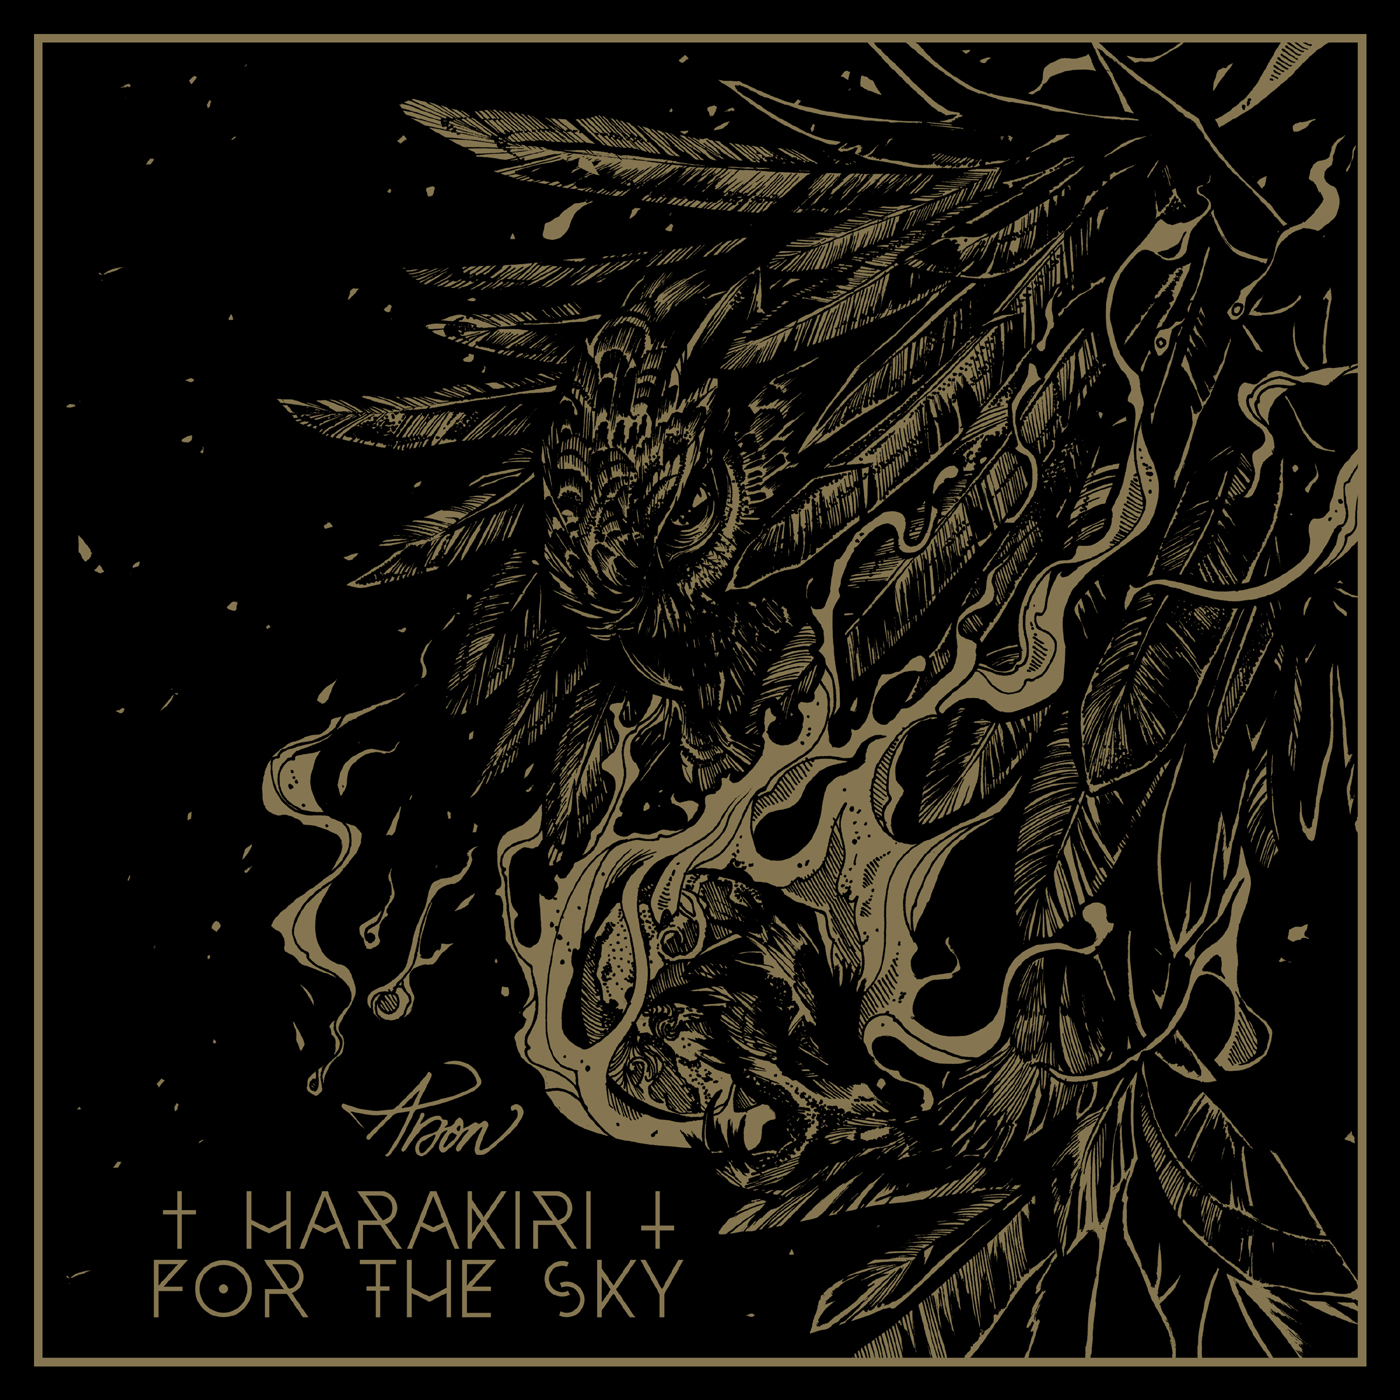 harakiri-for-the-sky-arson-01.jpg